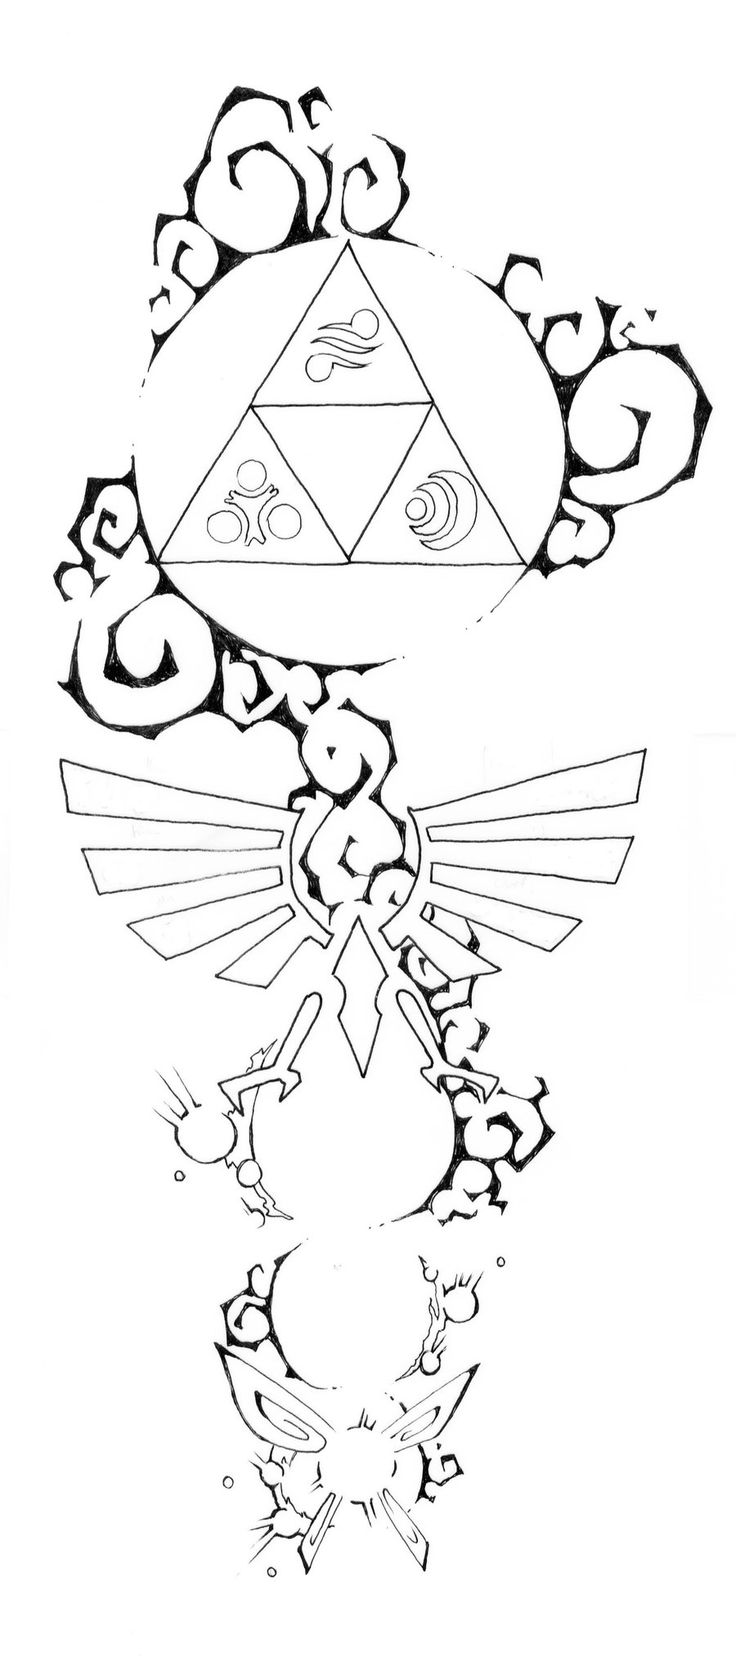 Zelda tattoo design #3 by blue-pepi.deviantart.com on @deviantART